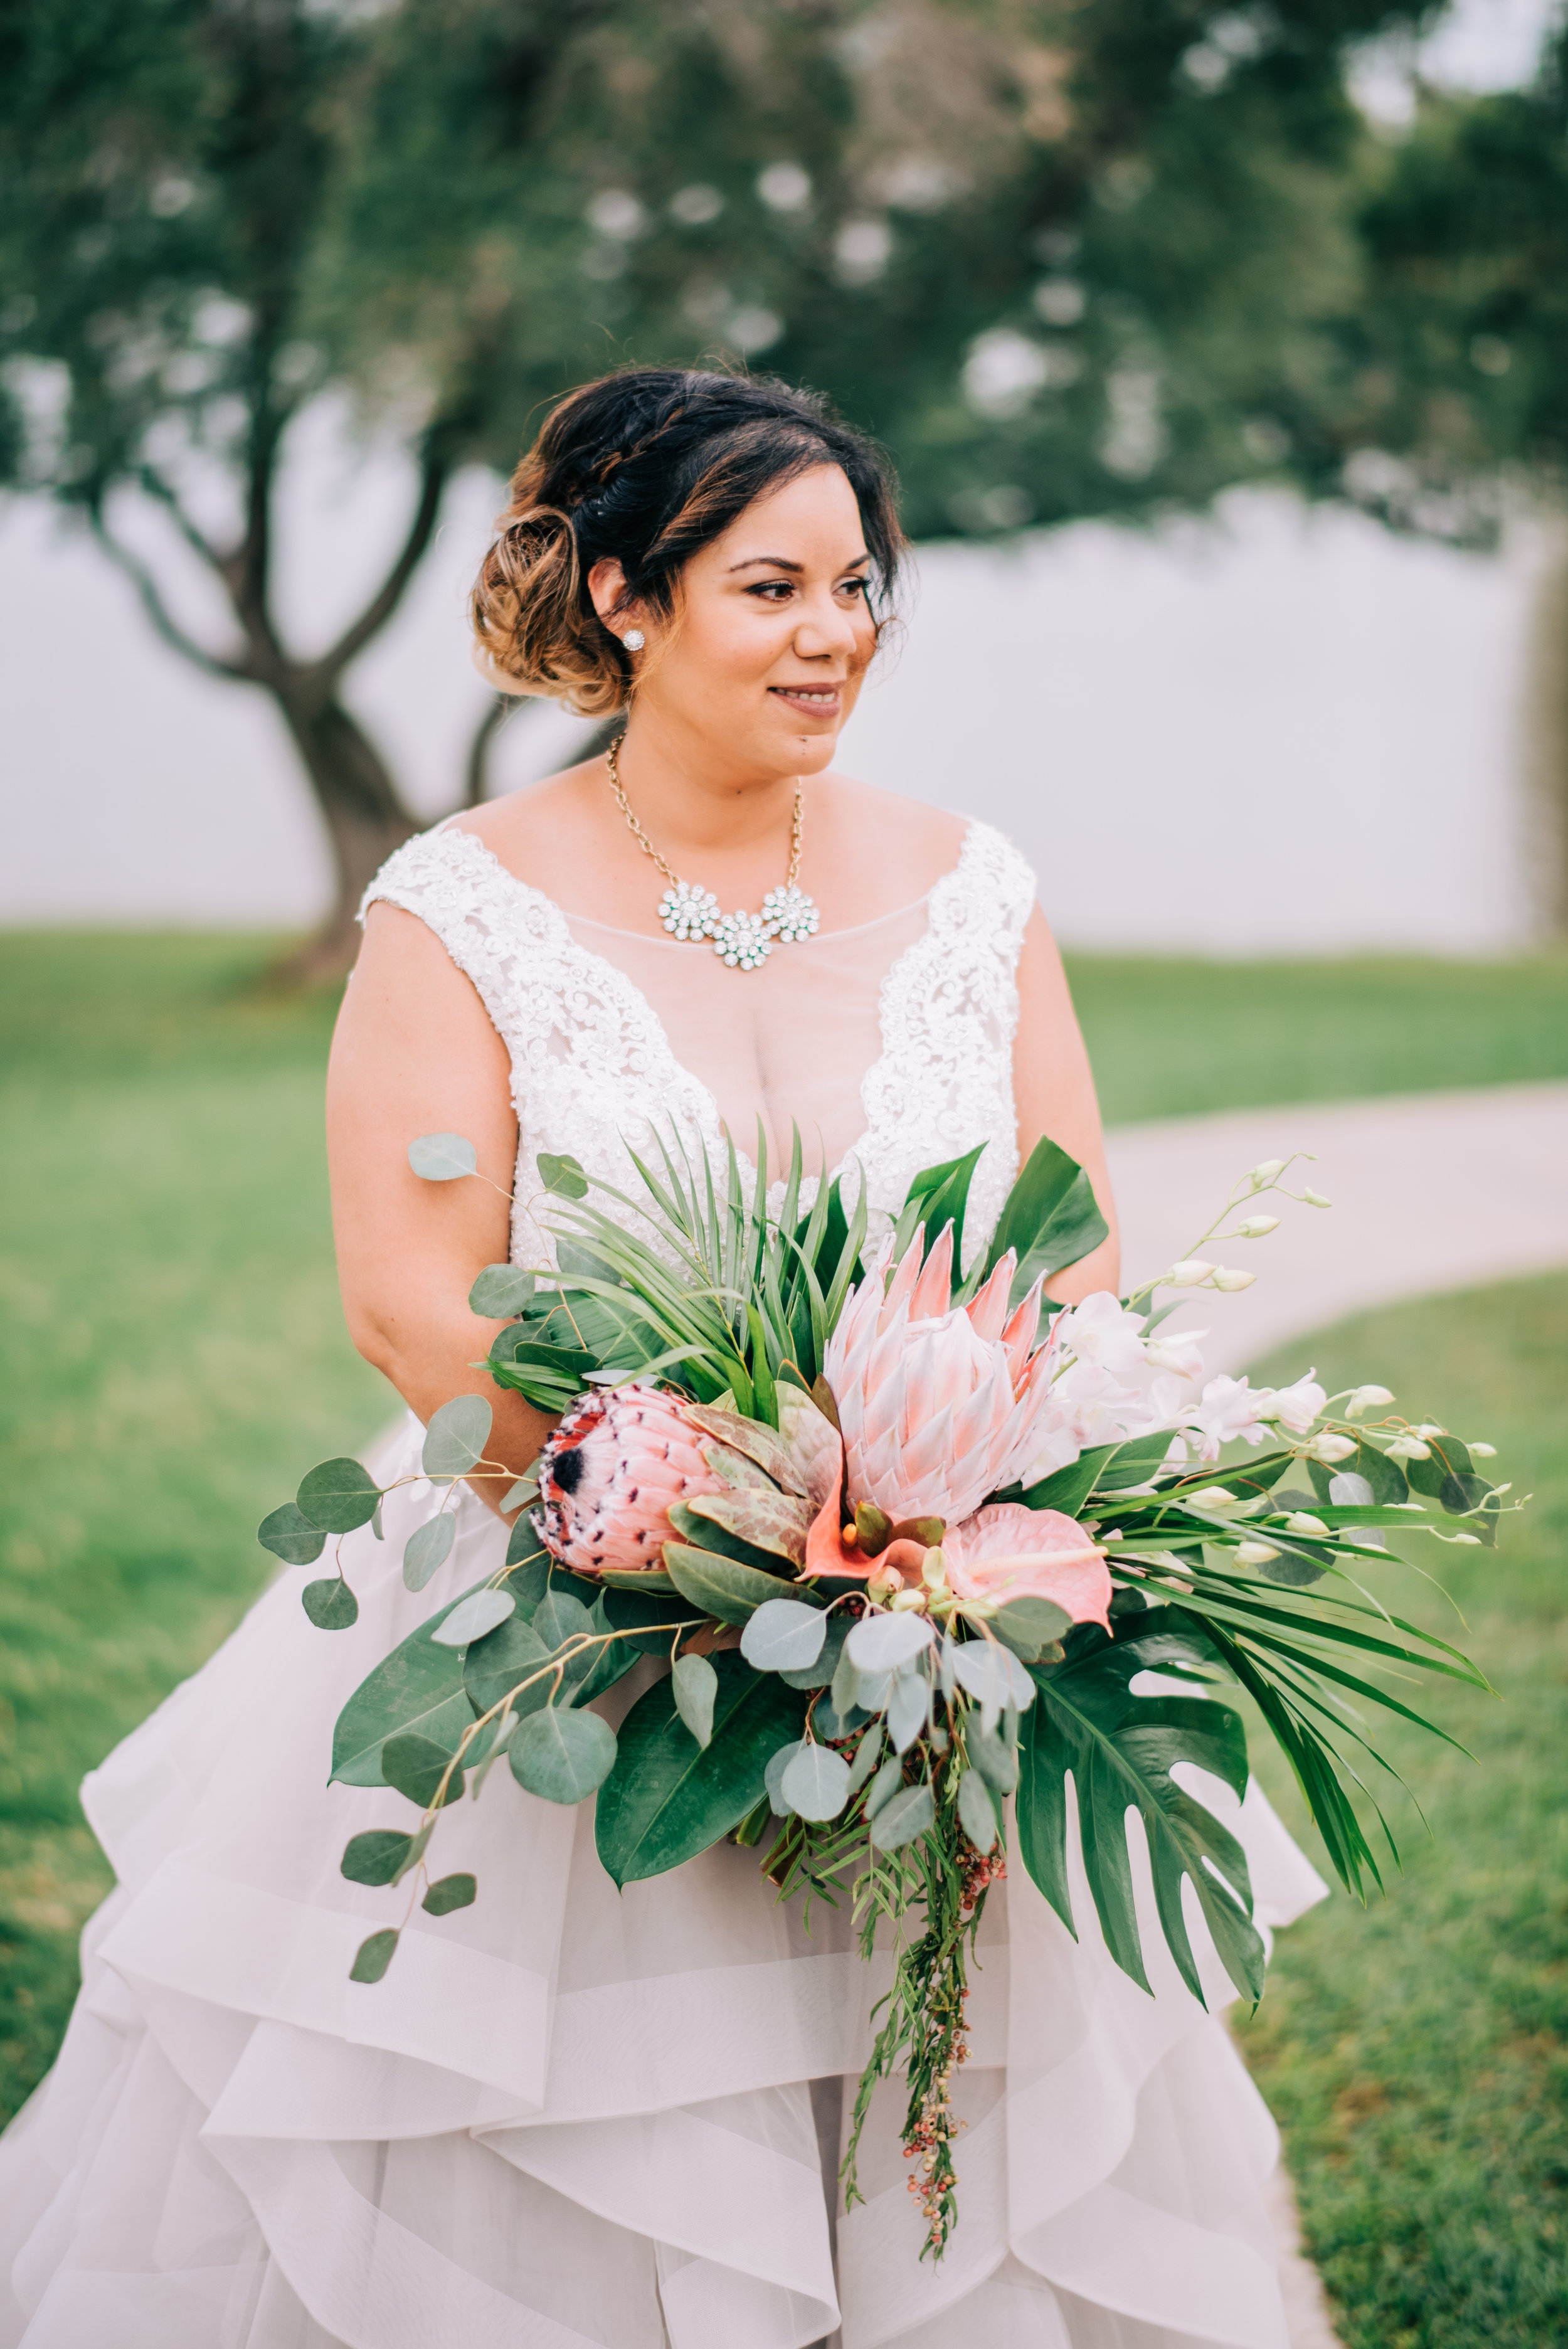 15 bride portrait bride bouquet tropical bouquet king protea orchid laceleaf pink bouquet Life Design Events photos by Josh Snyder Photography .jpg